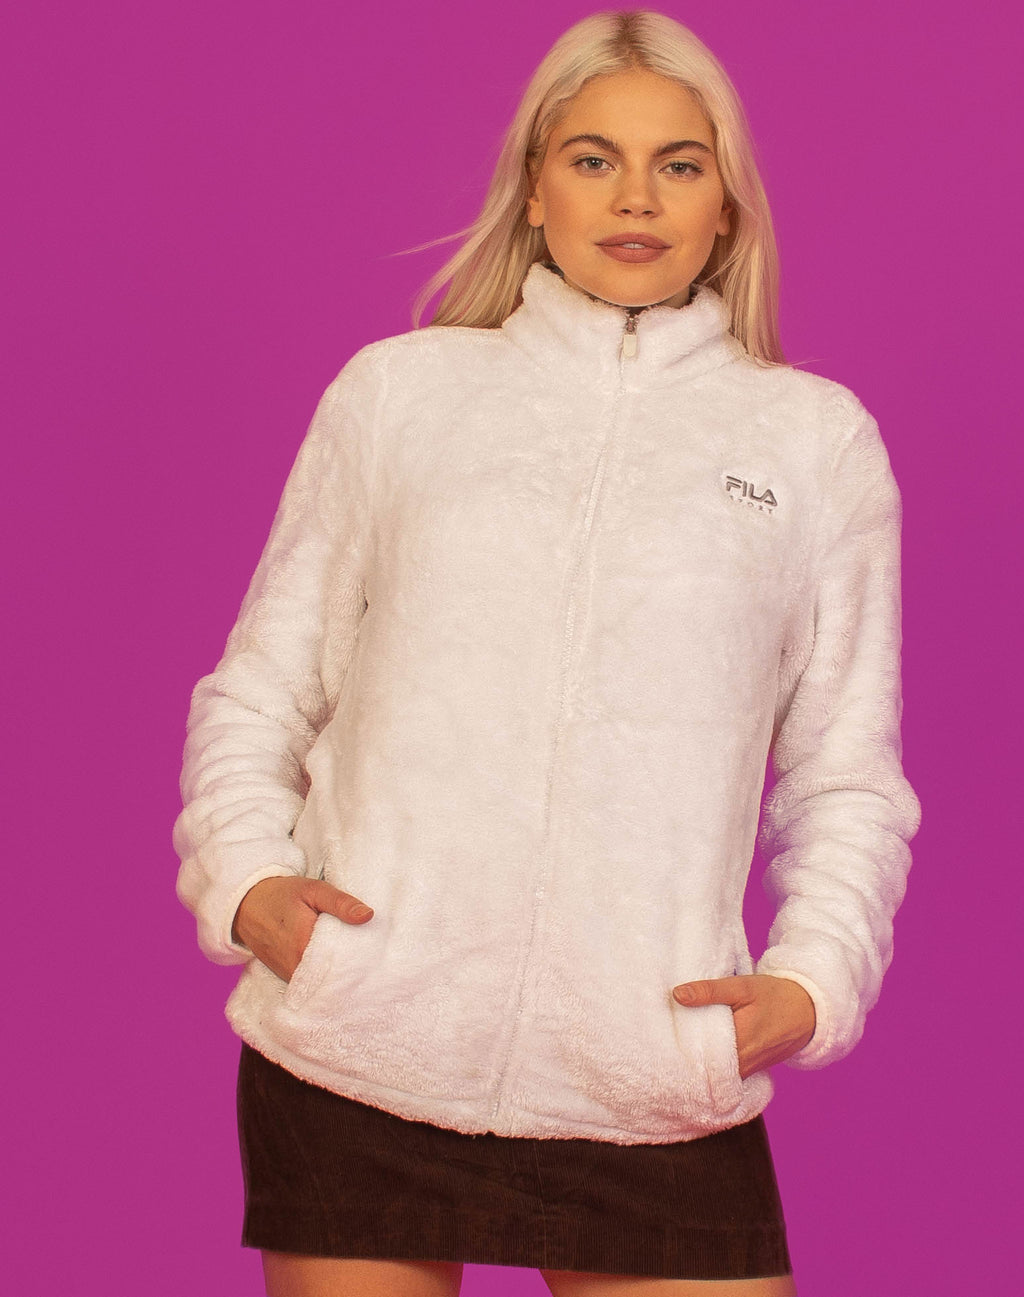 FILA WHITE ZIP FLEECE